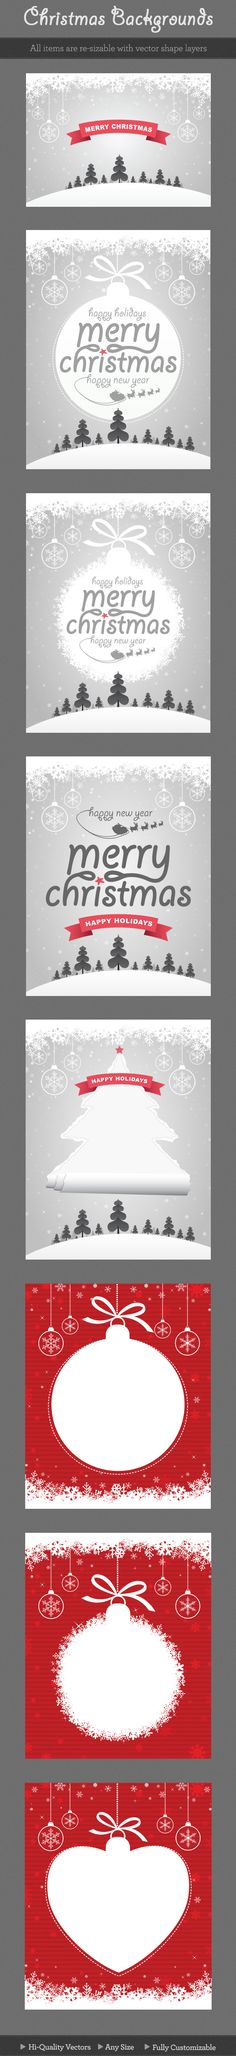 8 different backgrounds(vertical and horizontal) of Christmas messages. All of each designs are easily editable, change colors with one click or go any size…  It´s perfect to be used in Wallpapers, Websites, Banners, Headers, Ads, Leaflet, Brochure etc..  Used Font: Giddyup Std, Arial  Included Files:  * PSD (300 dpi)  * AI CS (vector)  * EPS 8 (vector – openable in any graphic program)  #poster #ads #advertising #leaflet